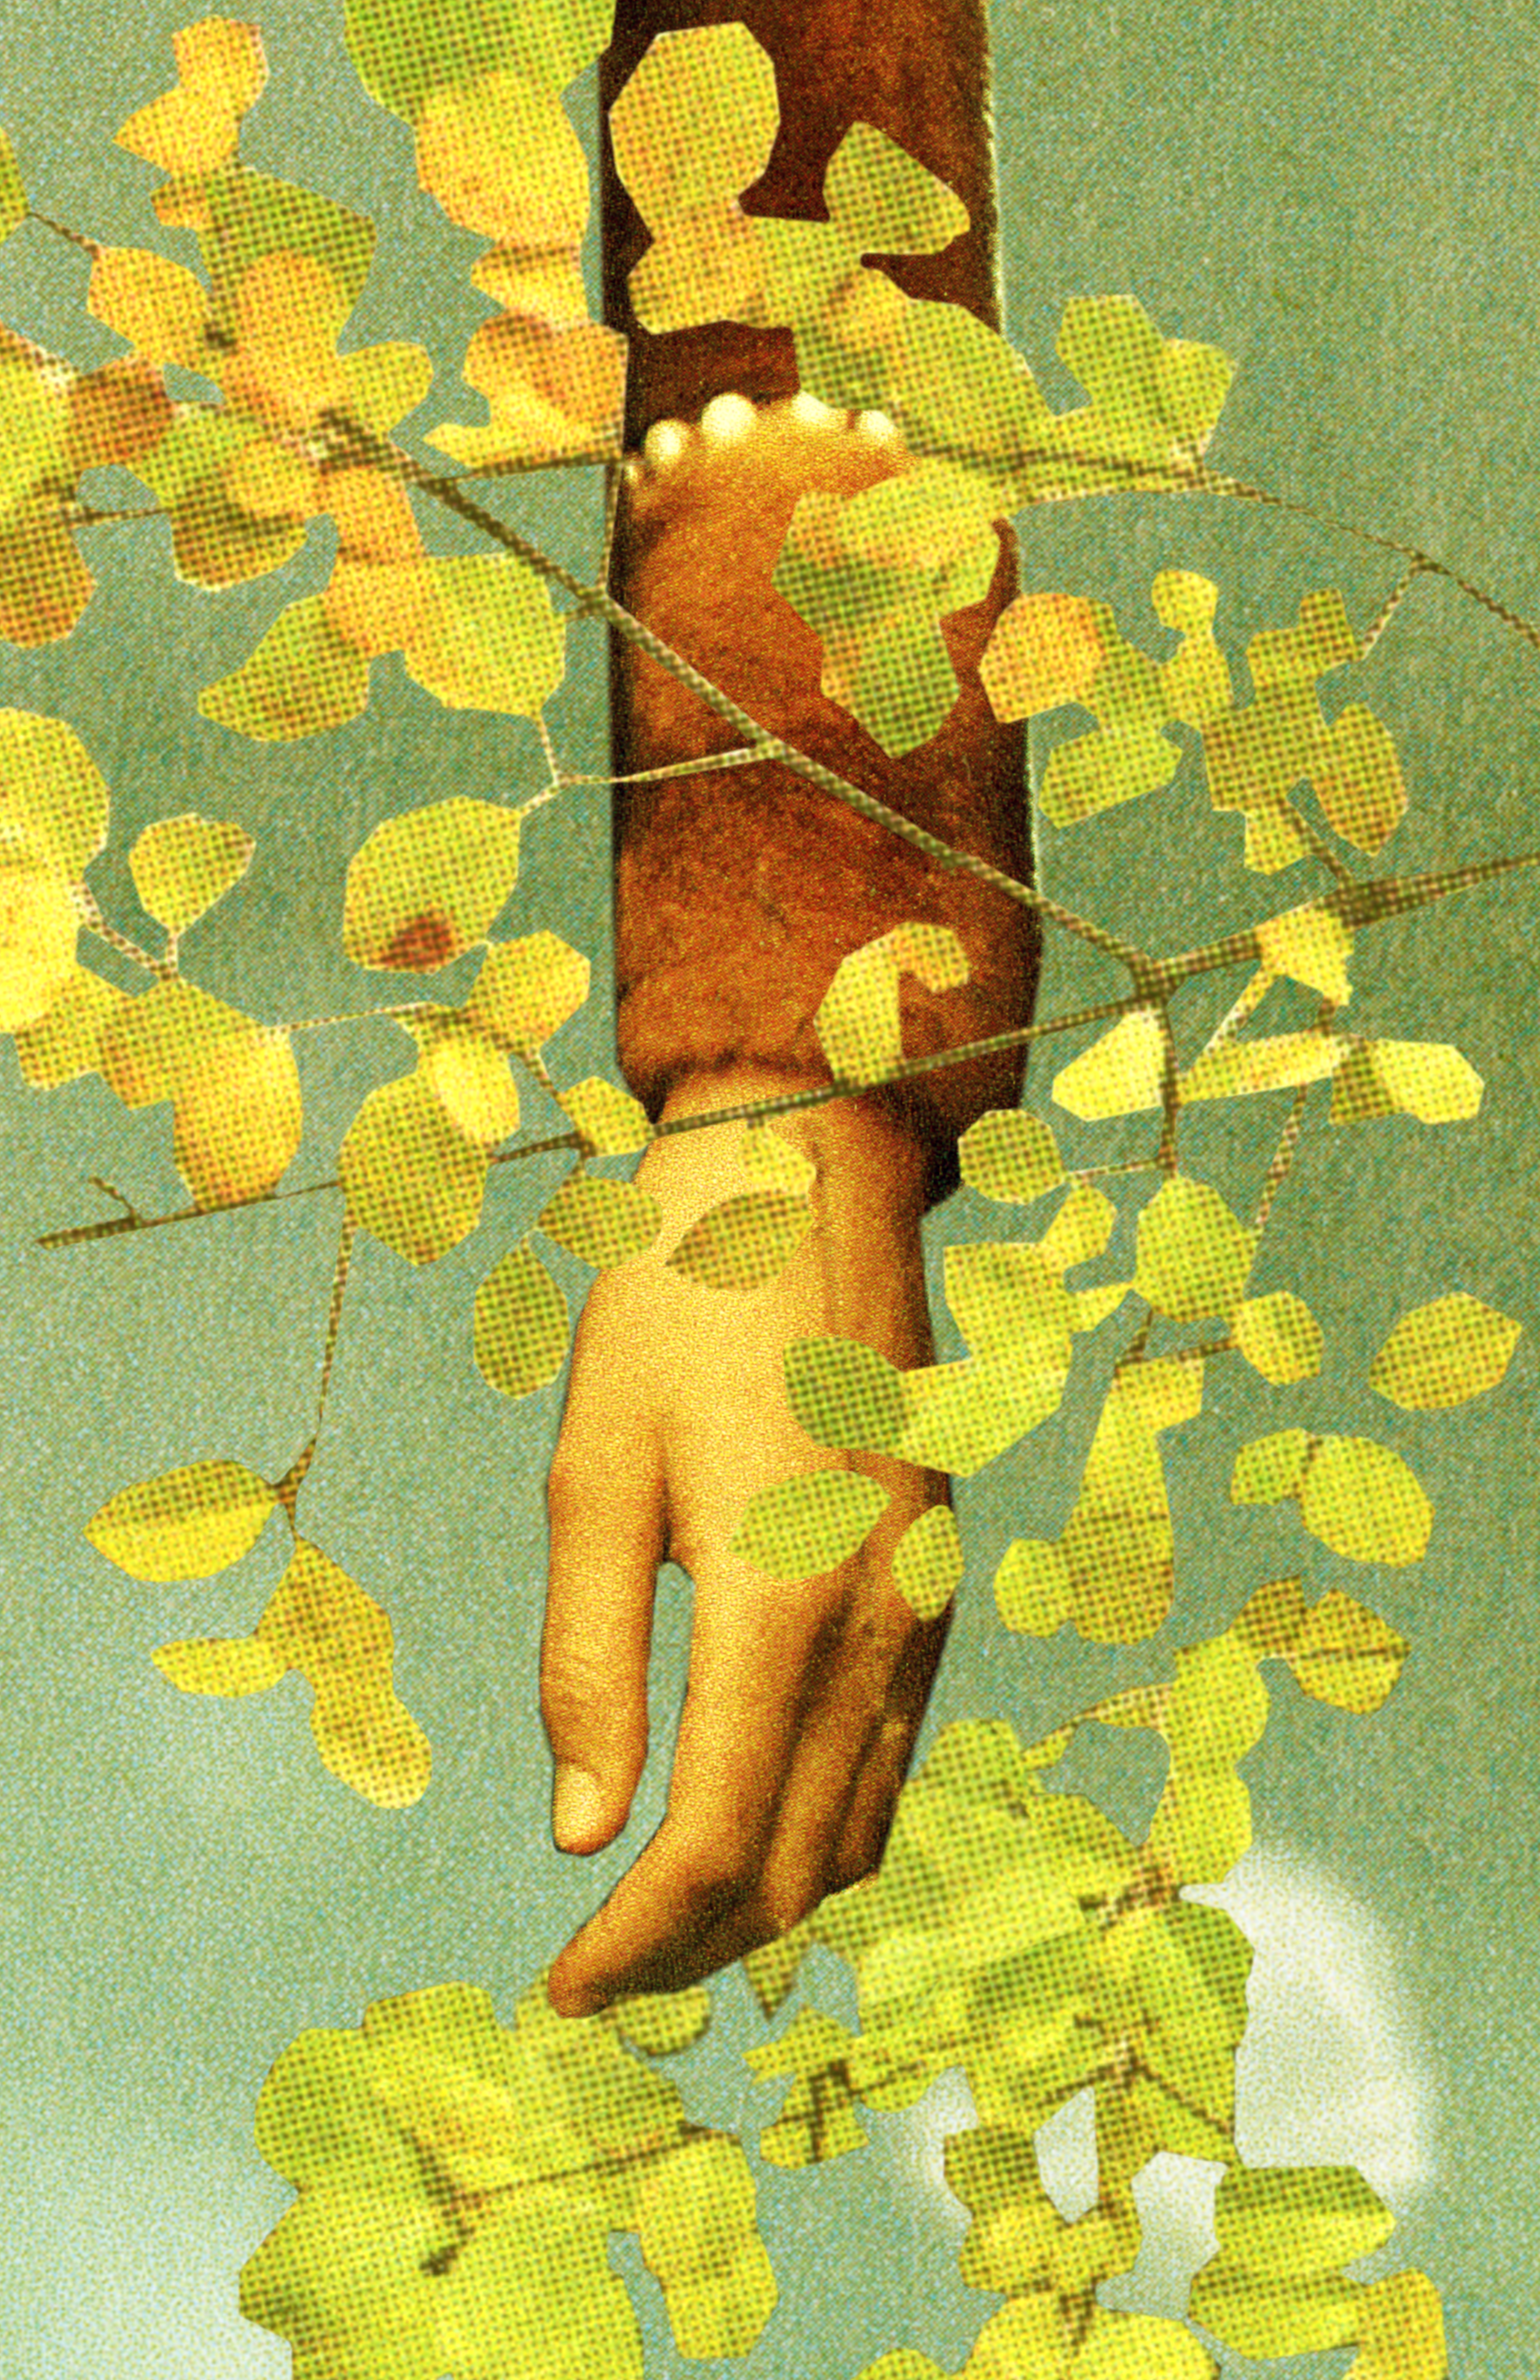 A arm down across the image with leaves overlapping